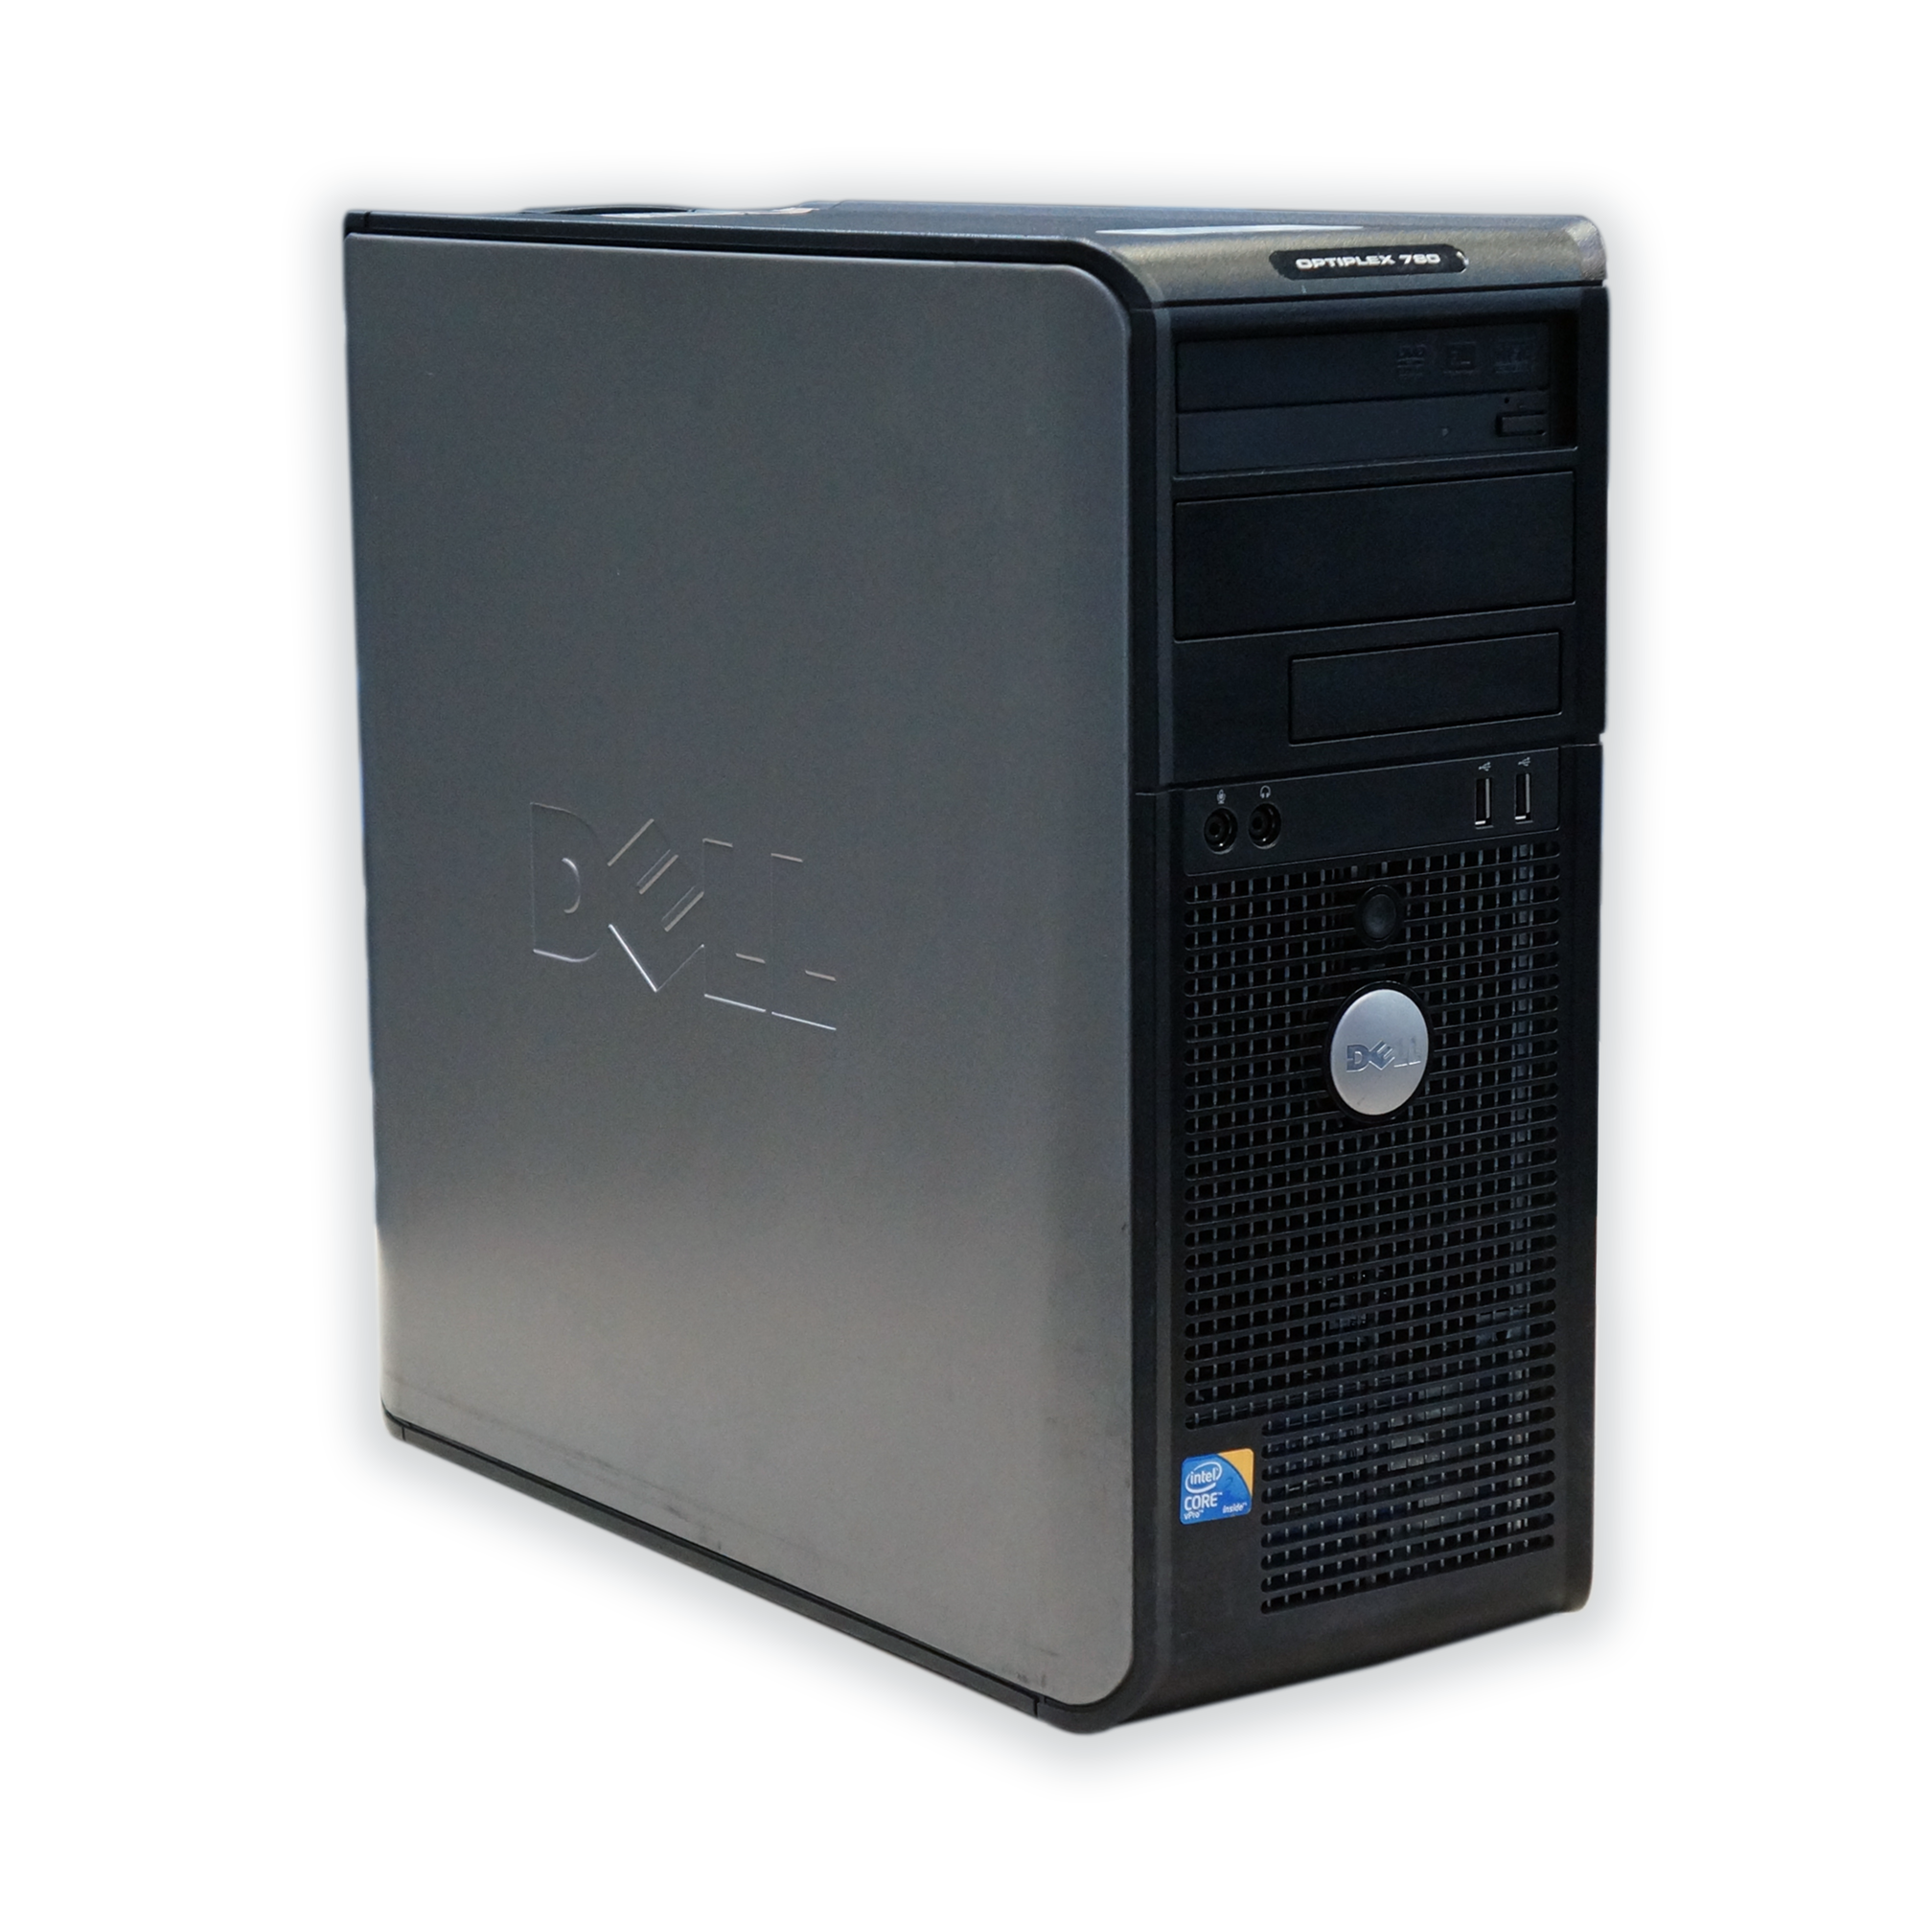 Počítač Dell OptiPlex 780 tower Intel Core 2 Duo E8400 3,0 GHz, 4 GB RAM, 160 GB HDD, Intel GMA, DVD-ROM, COA štítek Windows 7 PRO